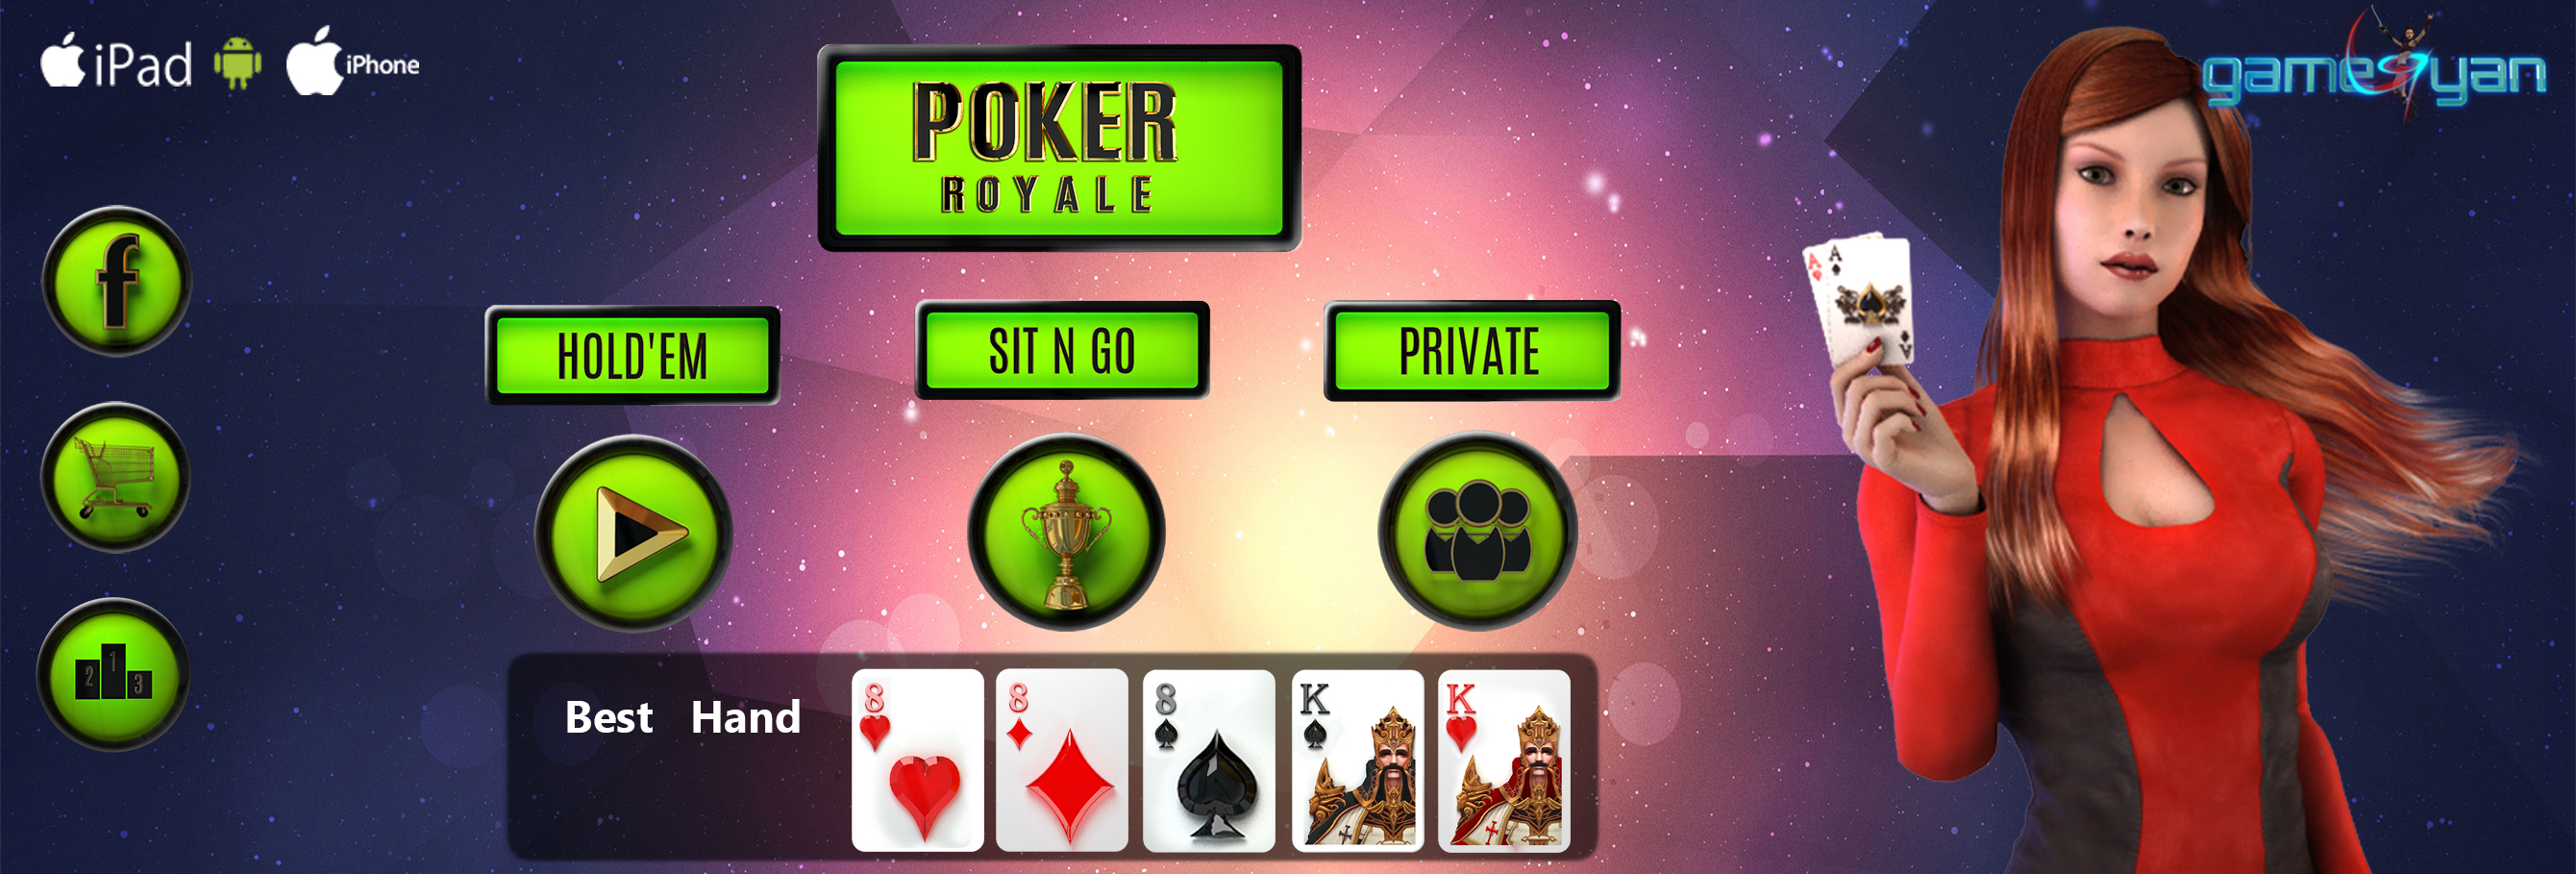 Royale Poker Game Design